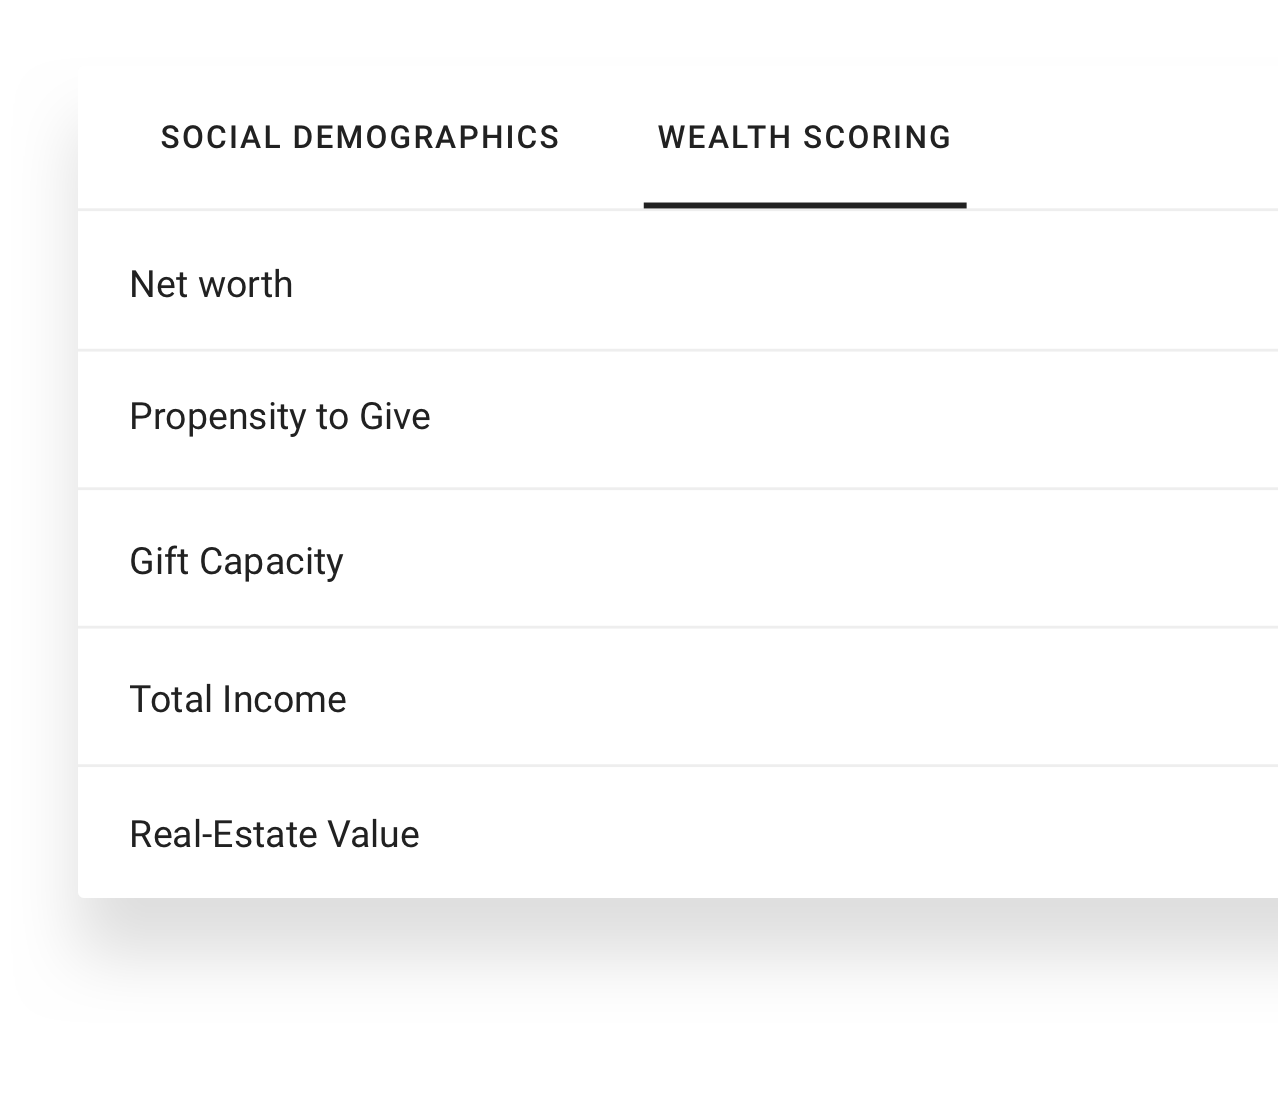 Wealth scoring table. Black text on white background.